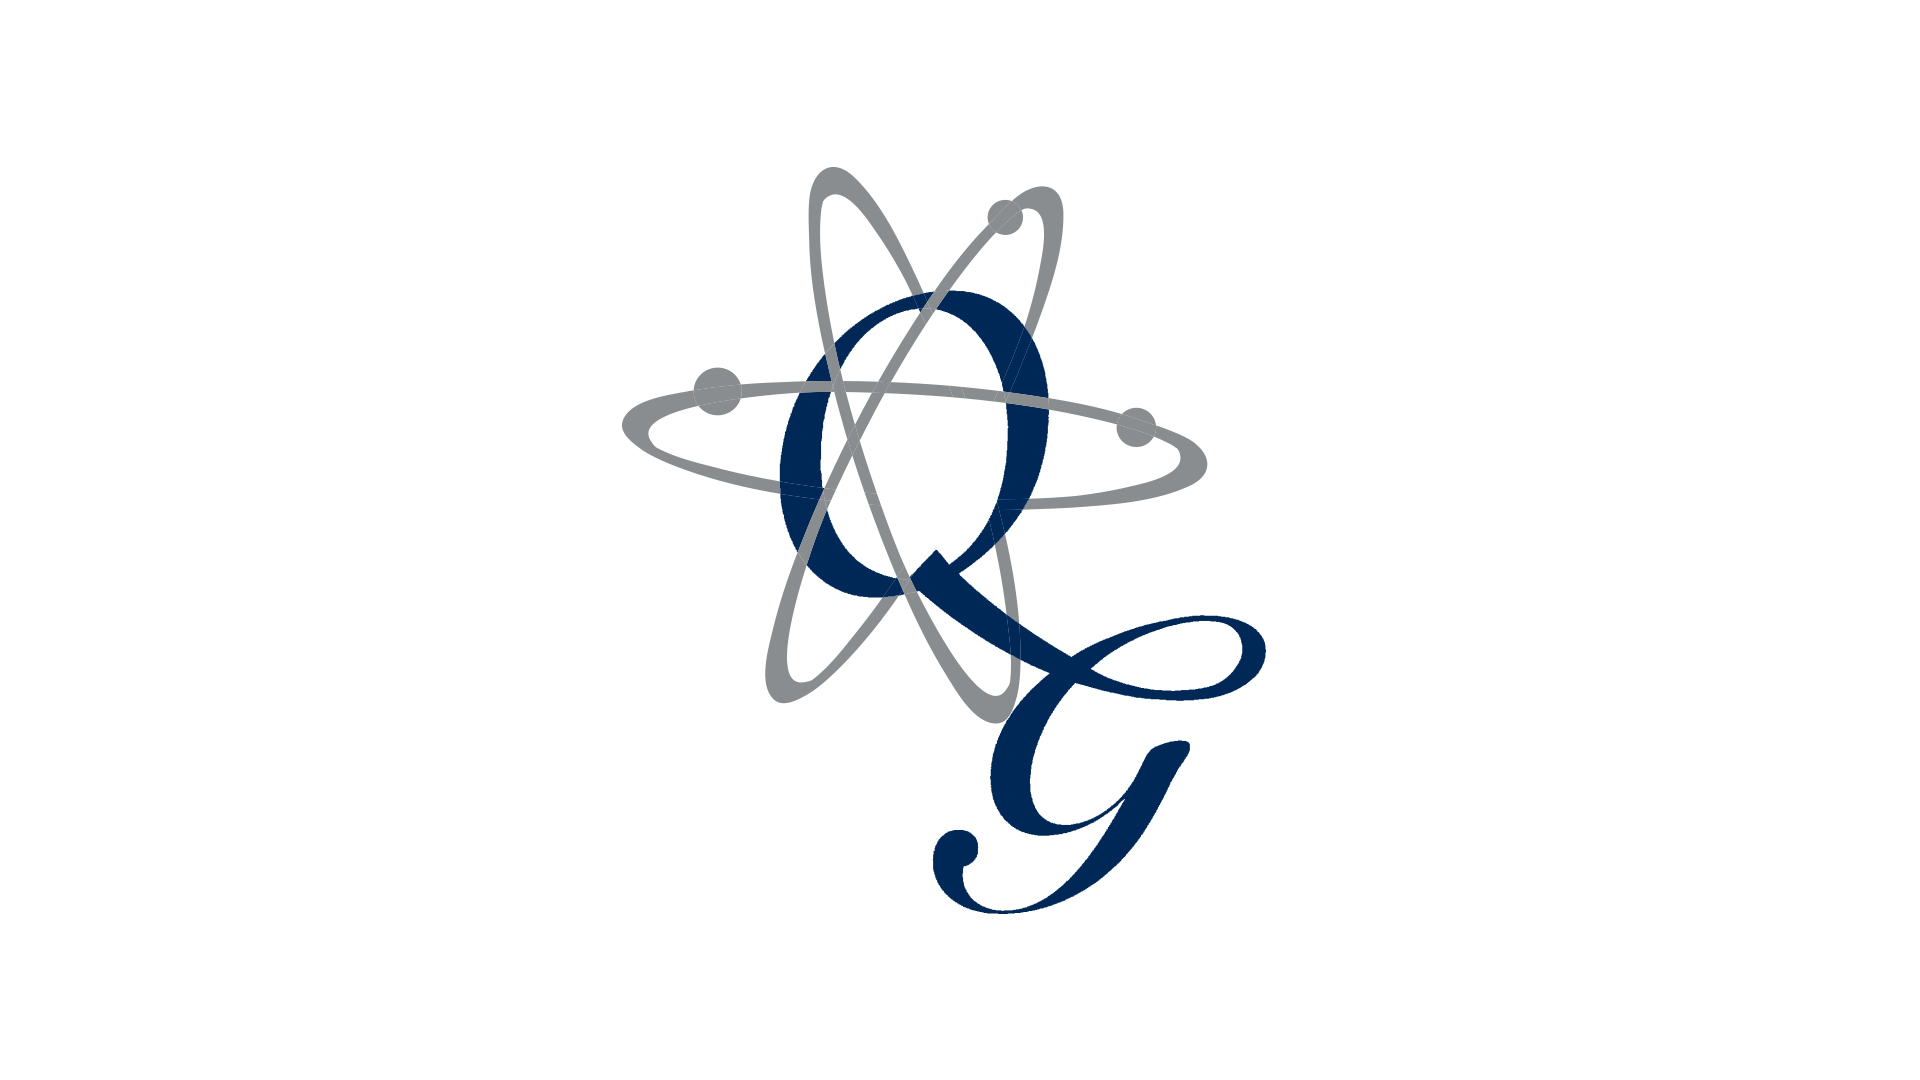 Queens Gate School science fundraiser brand logo